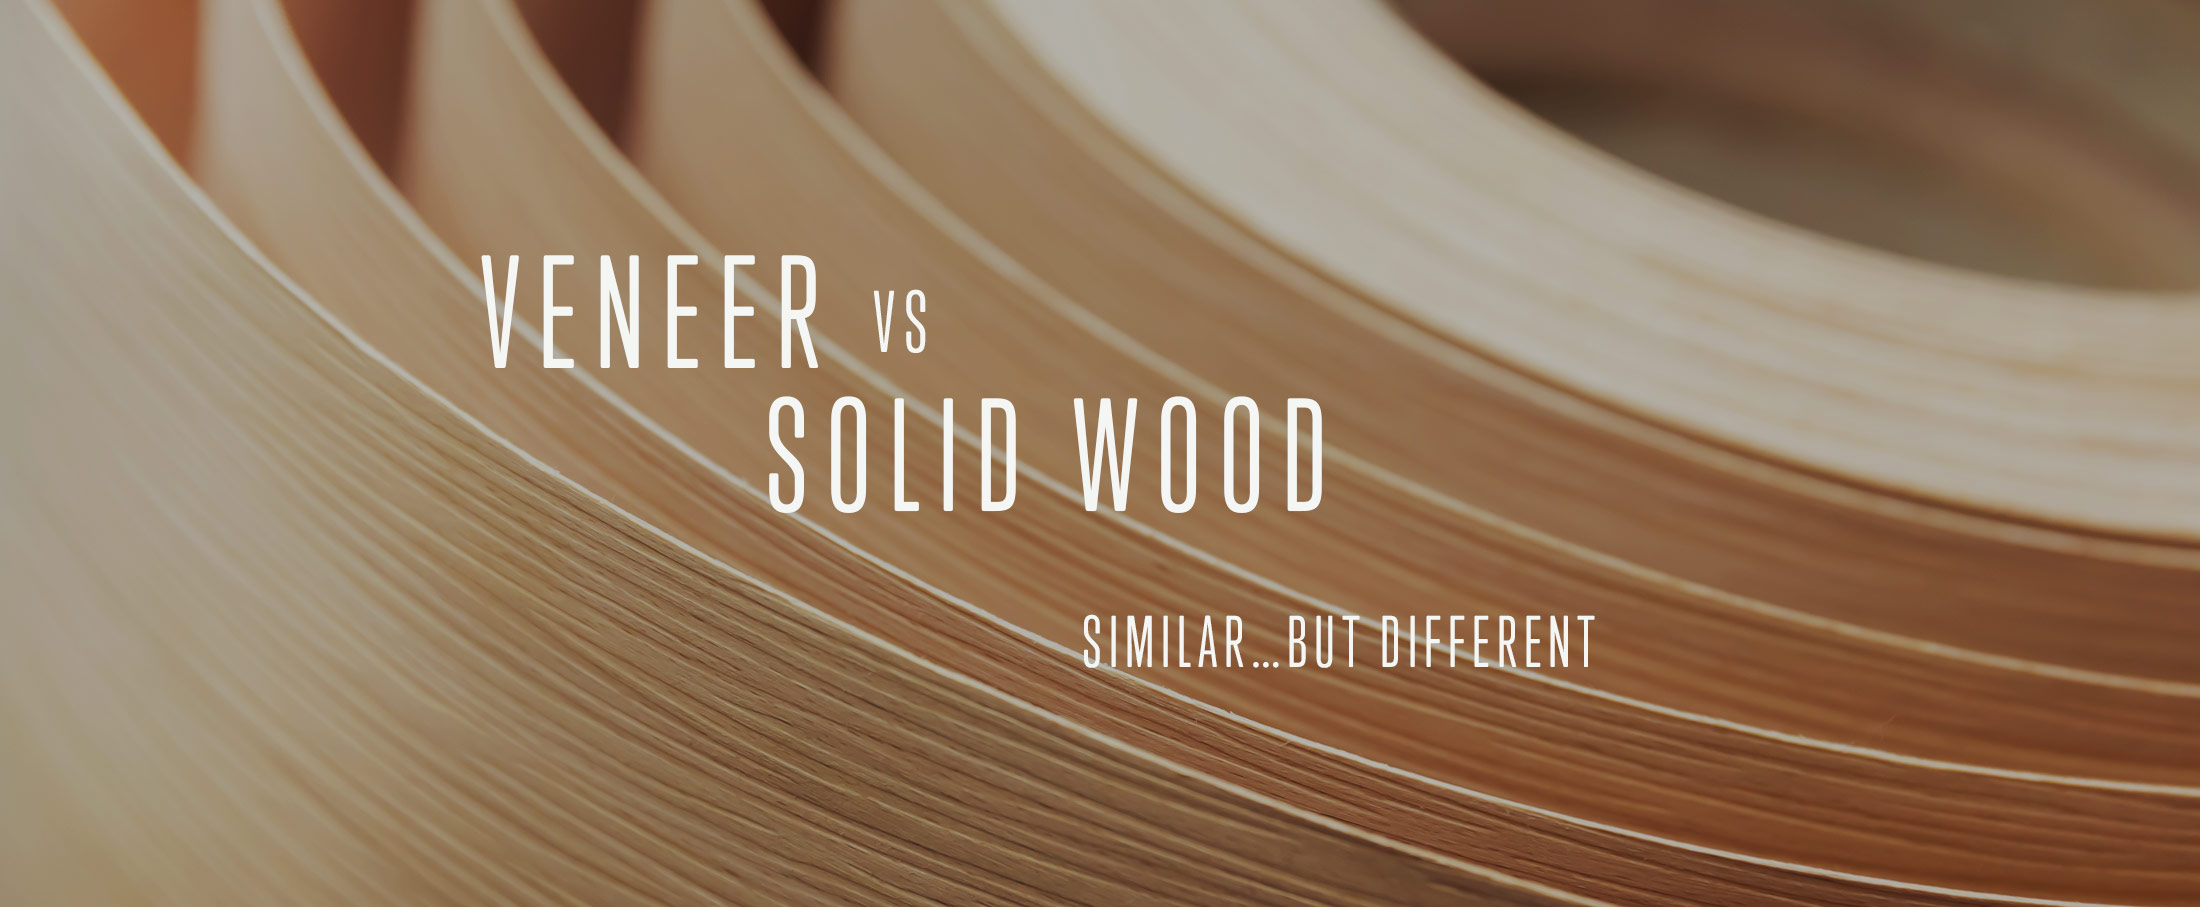 Veneer vs Solid wood